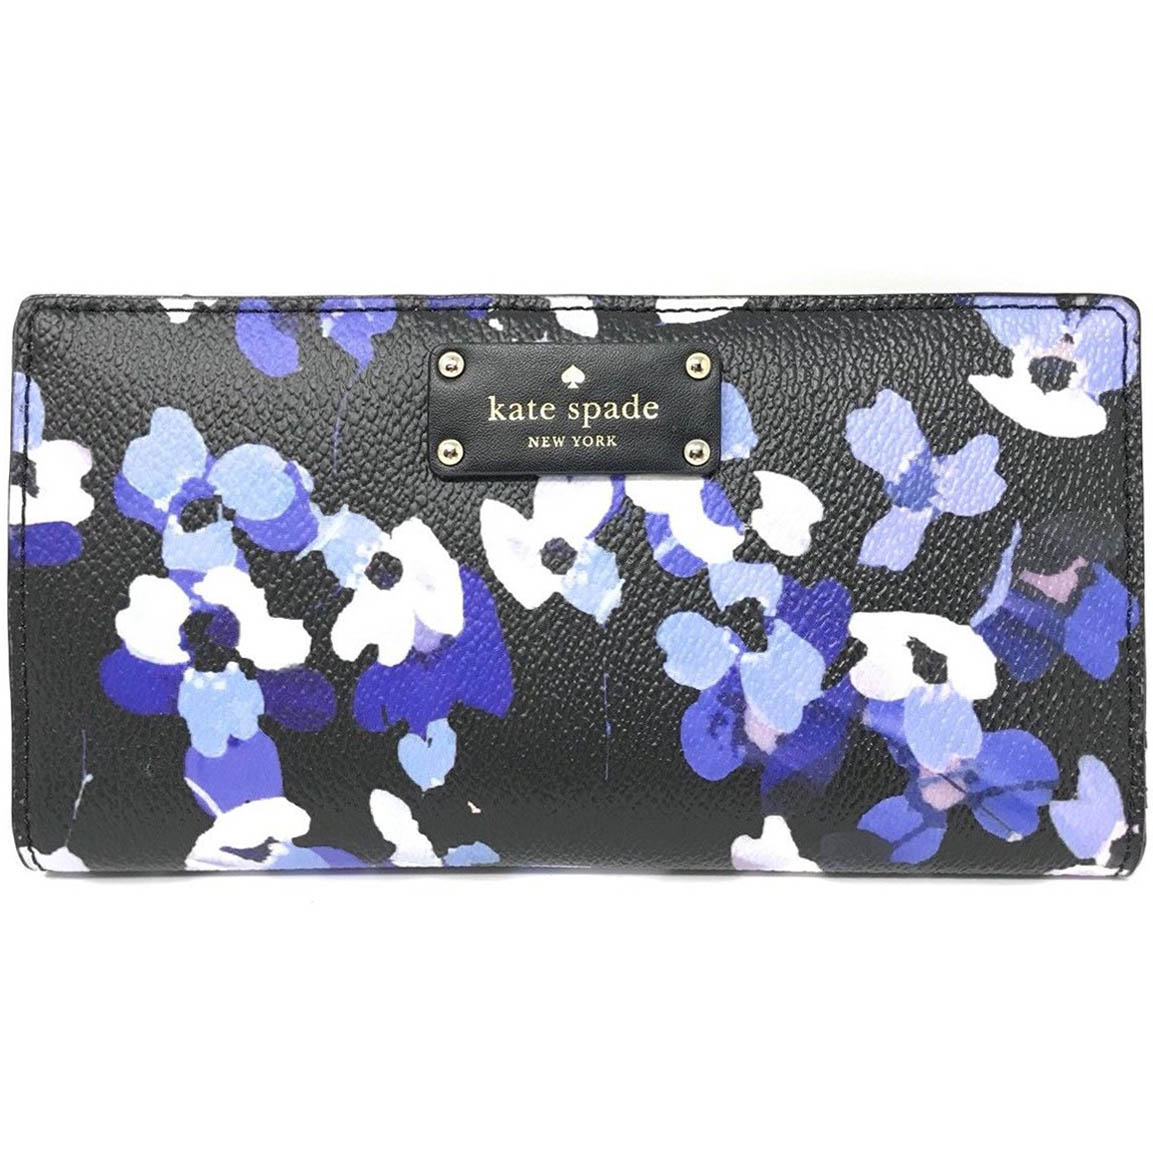 Kate Spade Grove Street Printed Stacy Wallet Black / Blue Flowers # WLRU3006